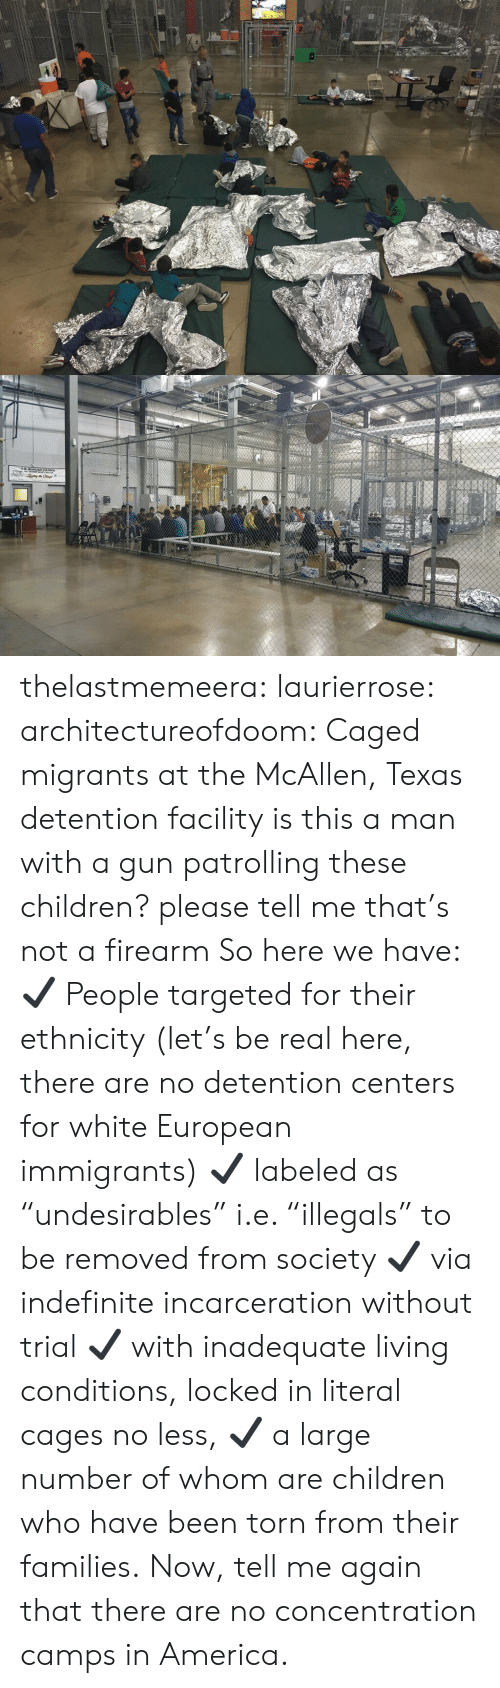 """Caged: thelastmemeera: laurierrose:  architectureofdoom:  Caged migrants at the McAllen, Texas detention facility    is this a man with a gun patrolling these children? please tell me that's not a firearm   So here we have:  ✔  People targeted for their ethnicity (let's be real here, there are no detention centers for white European immigrants)  ✔  labeled as """"undesirables"""" i.e. """"illegals"""" to be removed from society  ✔  via indefinite incarceration without trial  ✔  with inadequate living conditions, locked in literal cages no less,  ✔ a large number of whom are children who have been torn from their families. Now, tell me again that there are no concentration camps in America."""